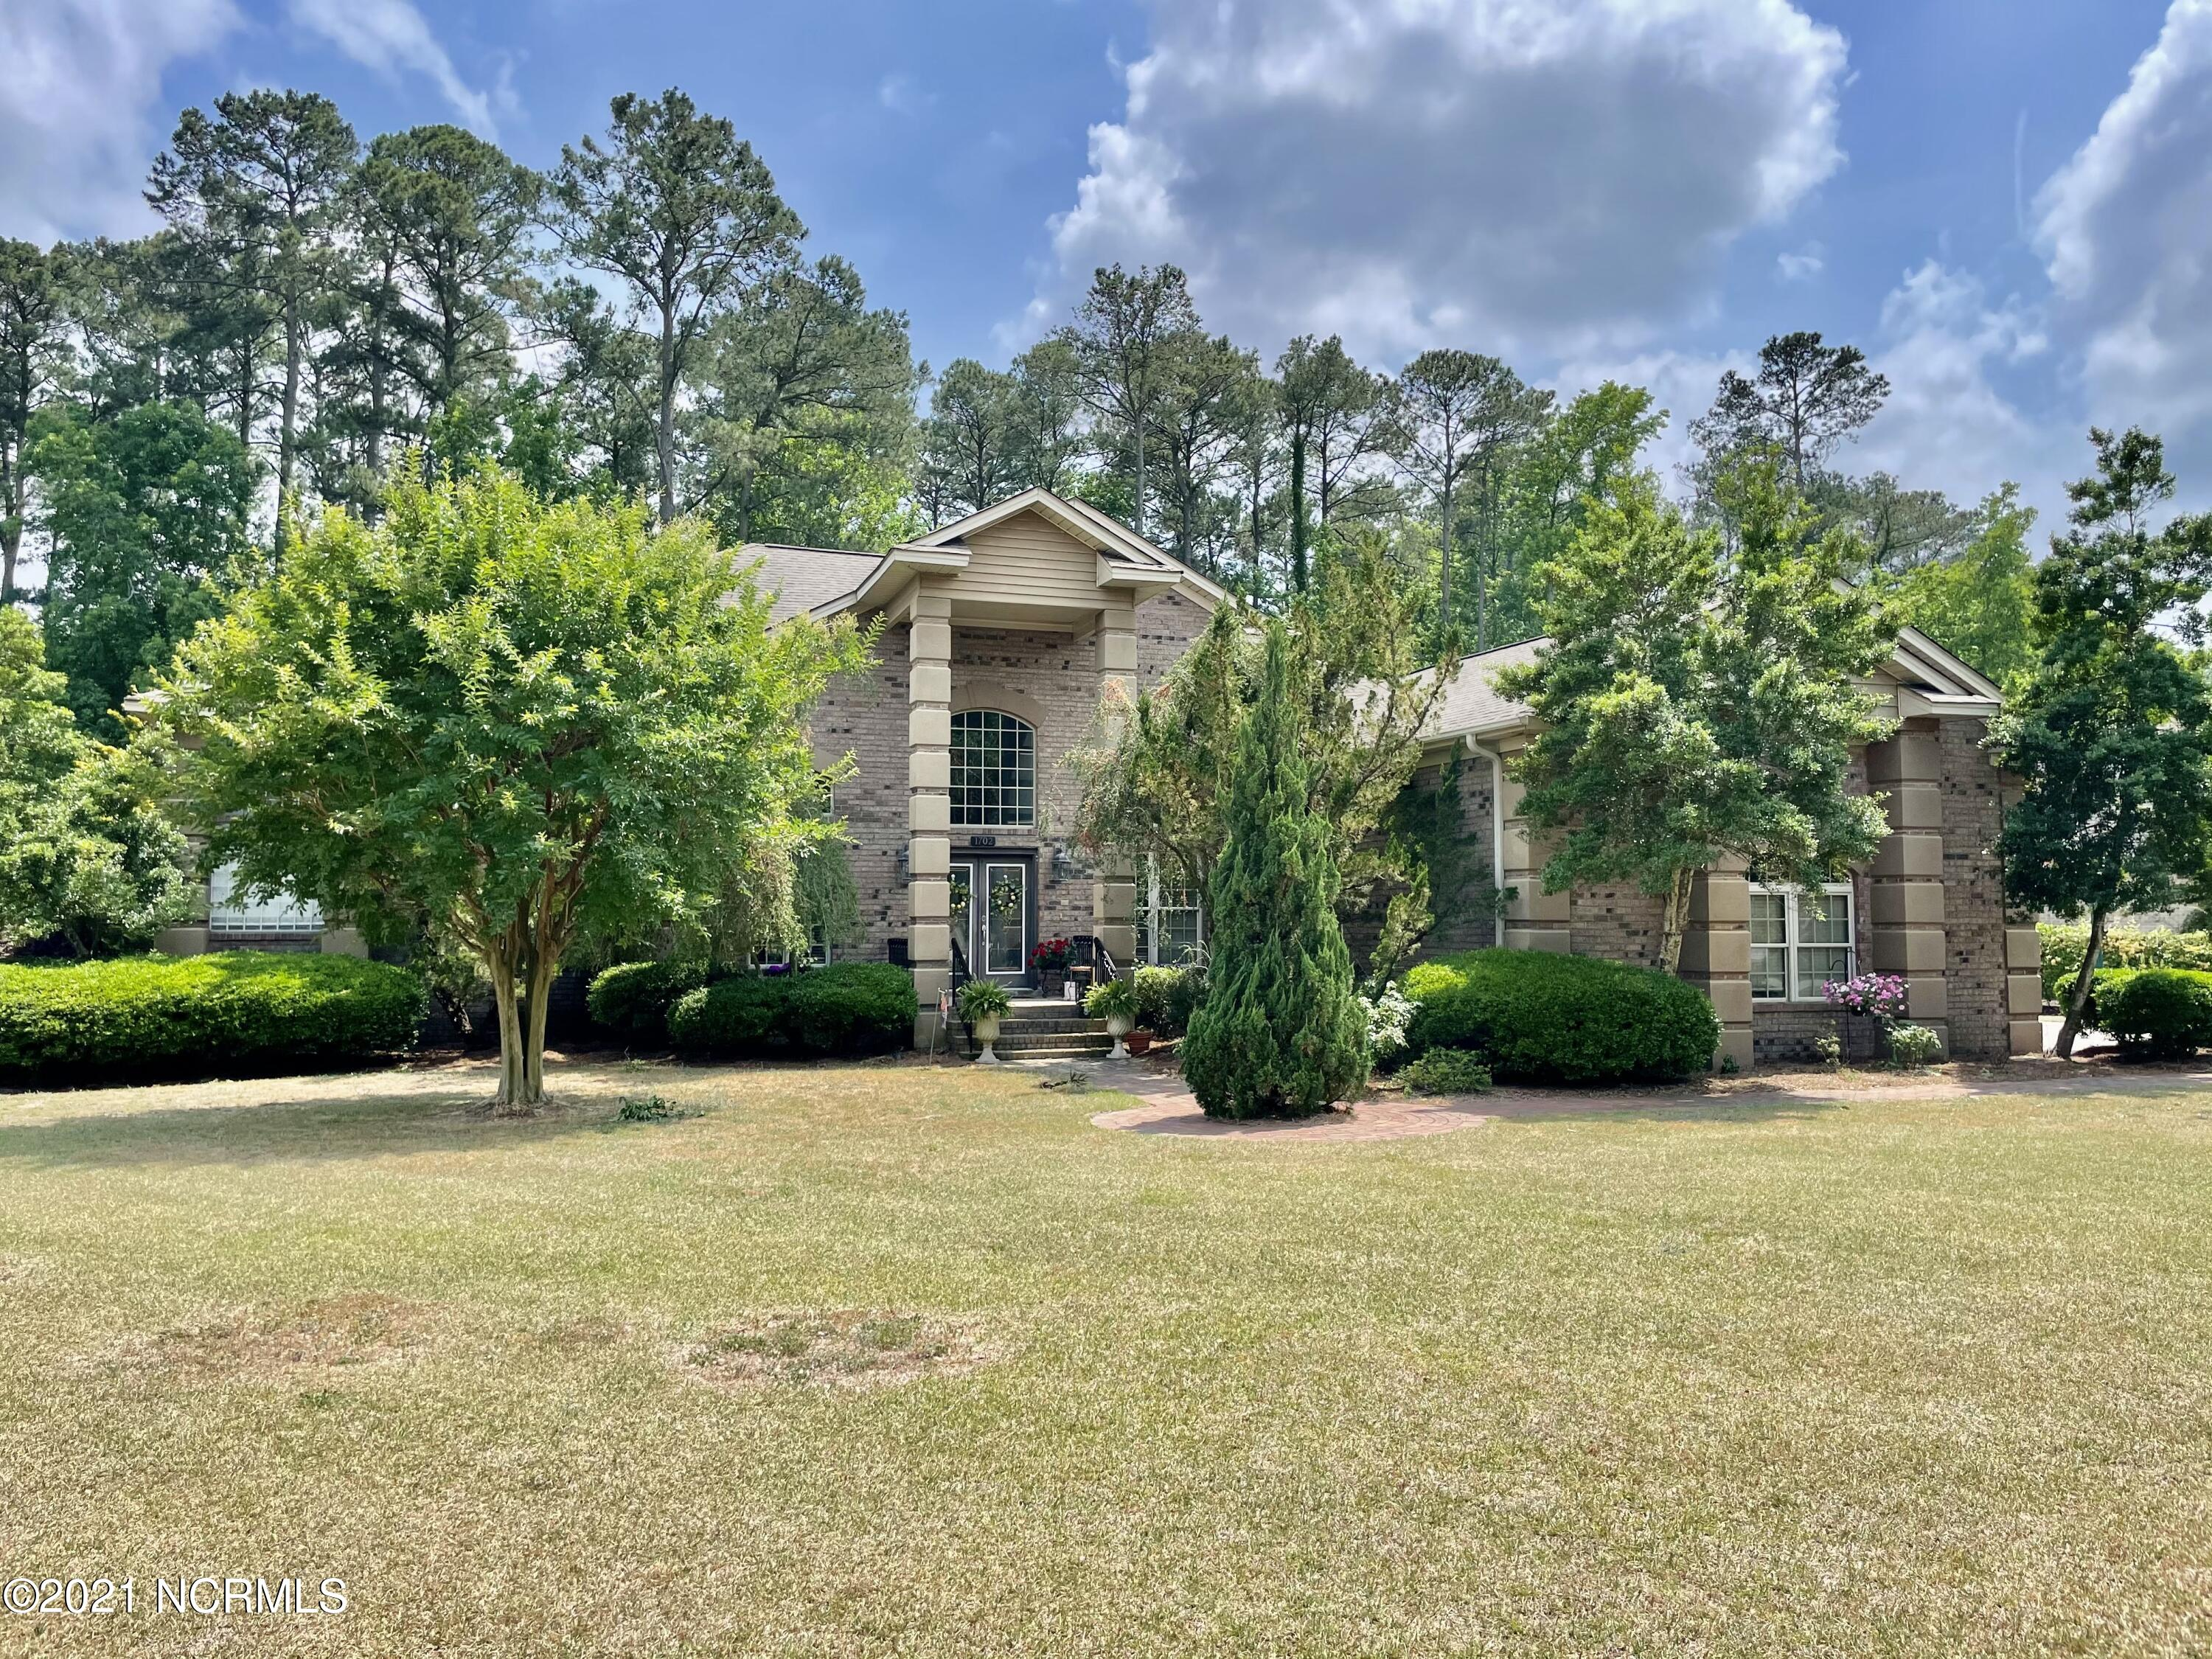 1702 Bloomsbury Road, Greenville, North Carolina 27858, 4 Bedrooms Bedrooms, 12 Rooms Rooms,3 BathroomsBathrooms,Single family residence,For sale,Bloomsbury,100273284